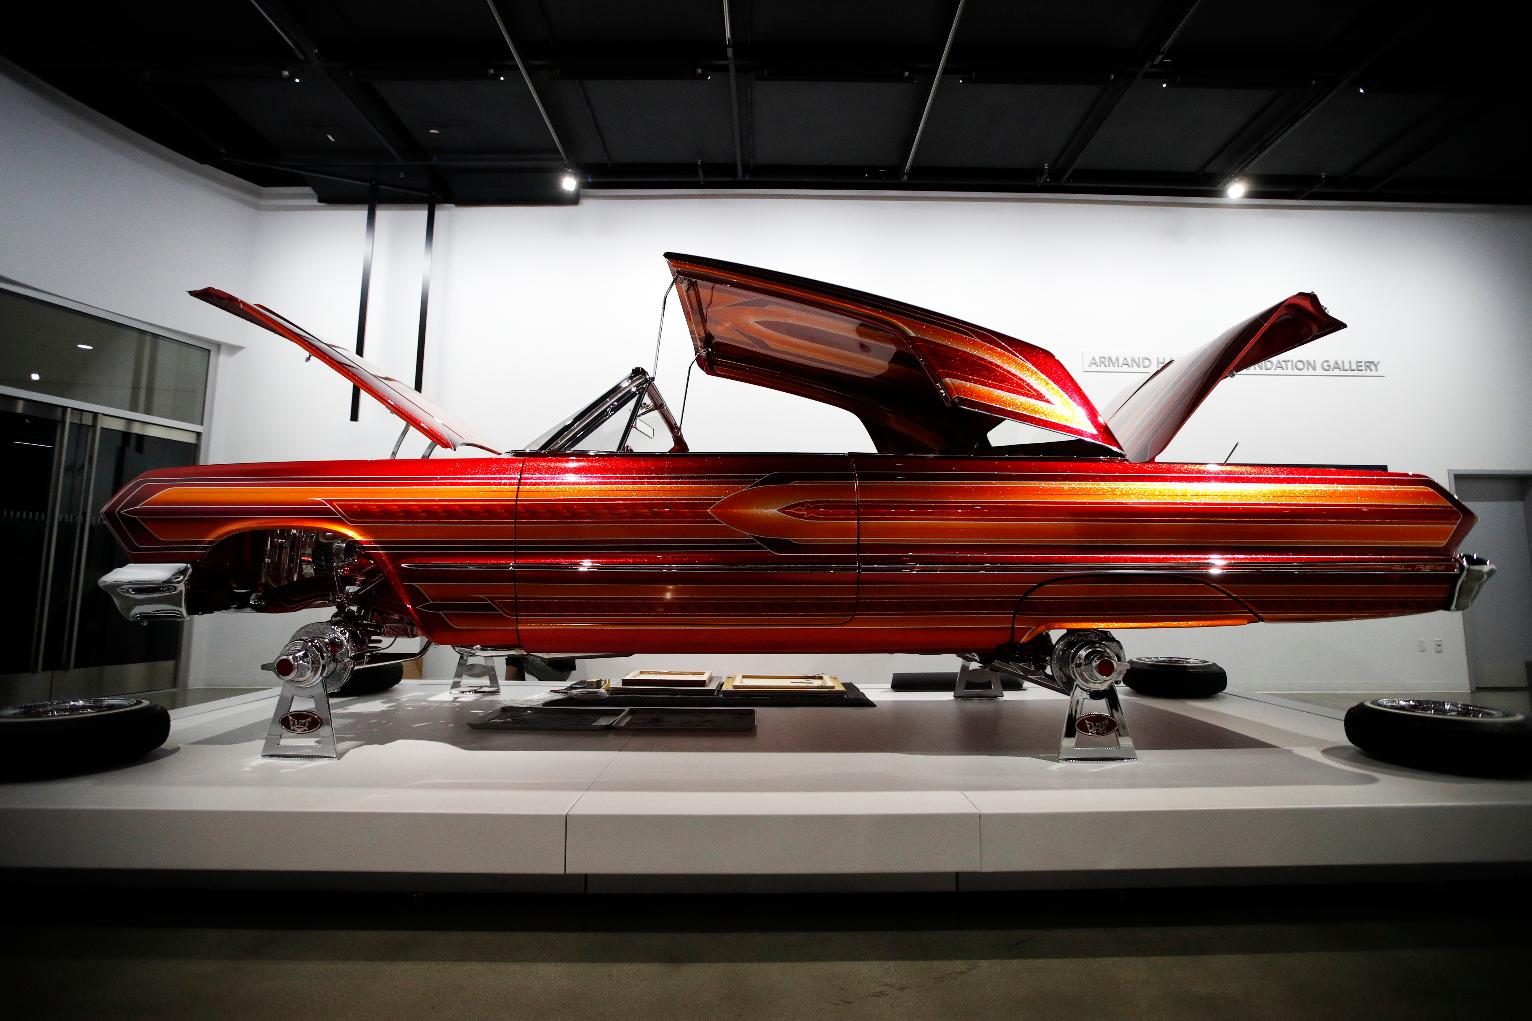 Museum Exhibits Lowrider Cars the Artwork Theyve